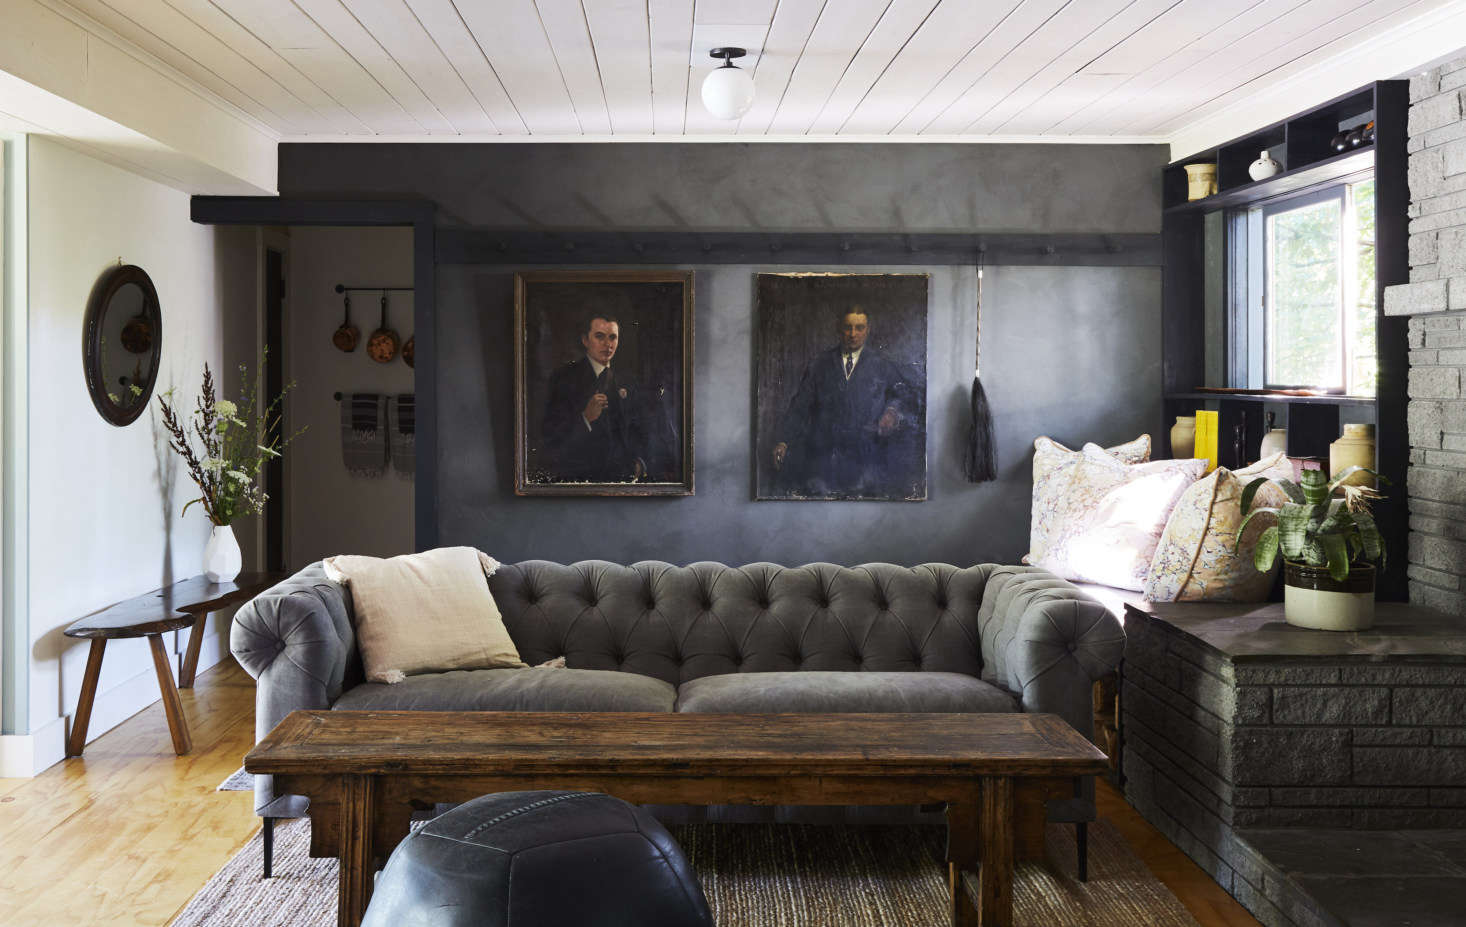 Rather than taking a modernist tact, Pflug furnished the lounge with classic pieces, such as this Chesterfield sofa from Perigold, and enlisted a specialist to apply clay plaster to the walls in a moody gray (they used American Clay; read about the finish in Remodeling 101: Modern Plaster Walls).